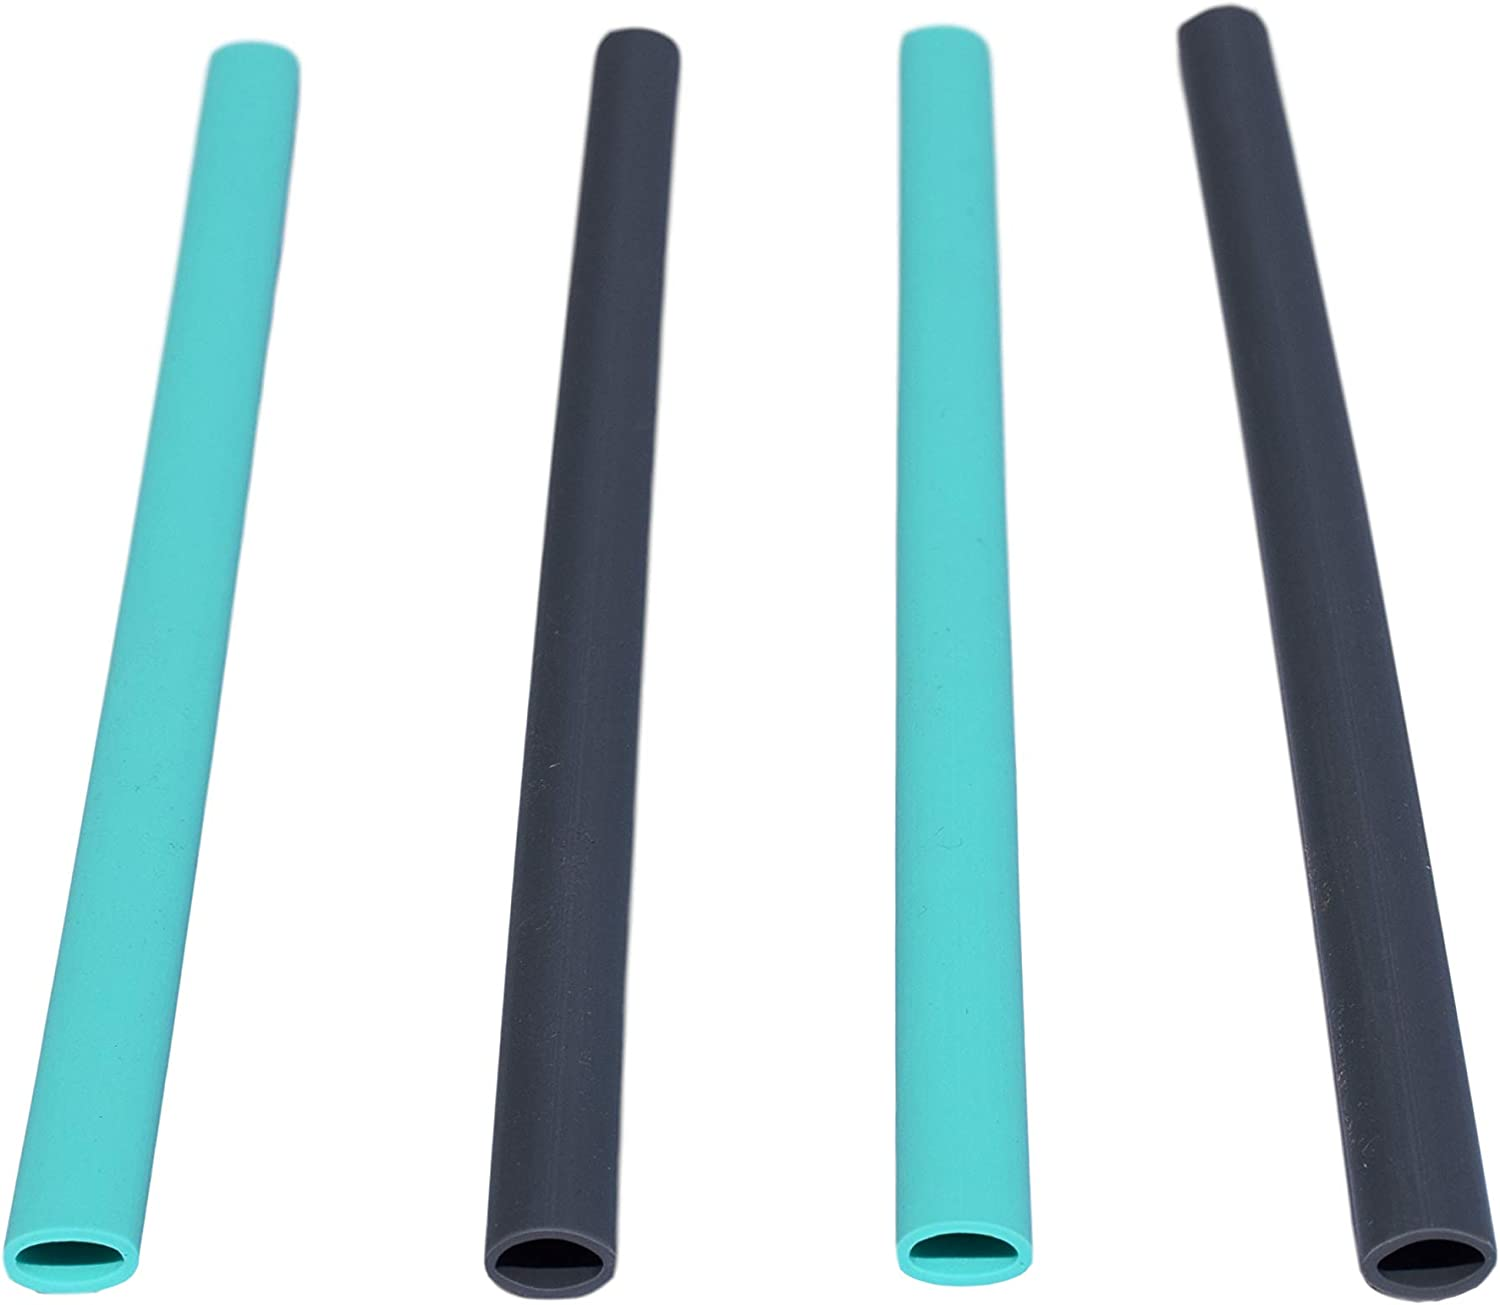 HotSips Reusable Straws 4 Large with Travel Case, 2 Aqua + 2 Charcoal Reusable ECO Friendly Straws For Both Cold & Hot Large Beverages 20oz - 40oz Non Toxic BPA Free FDA Grade material Recyclable